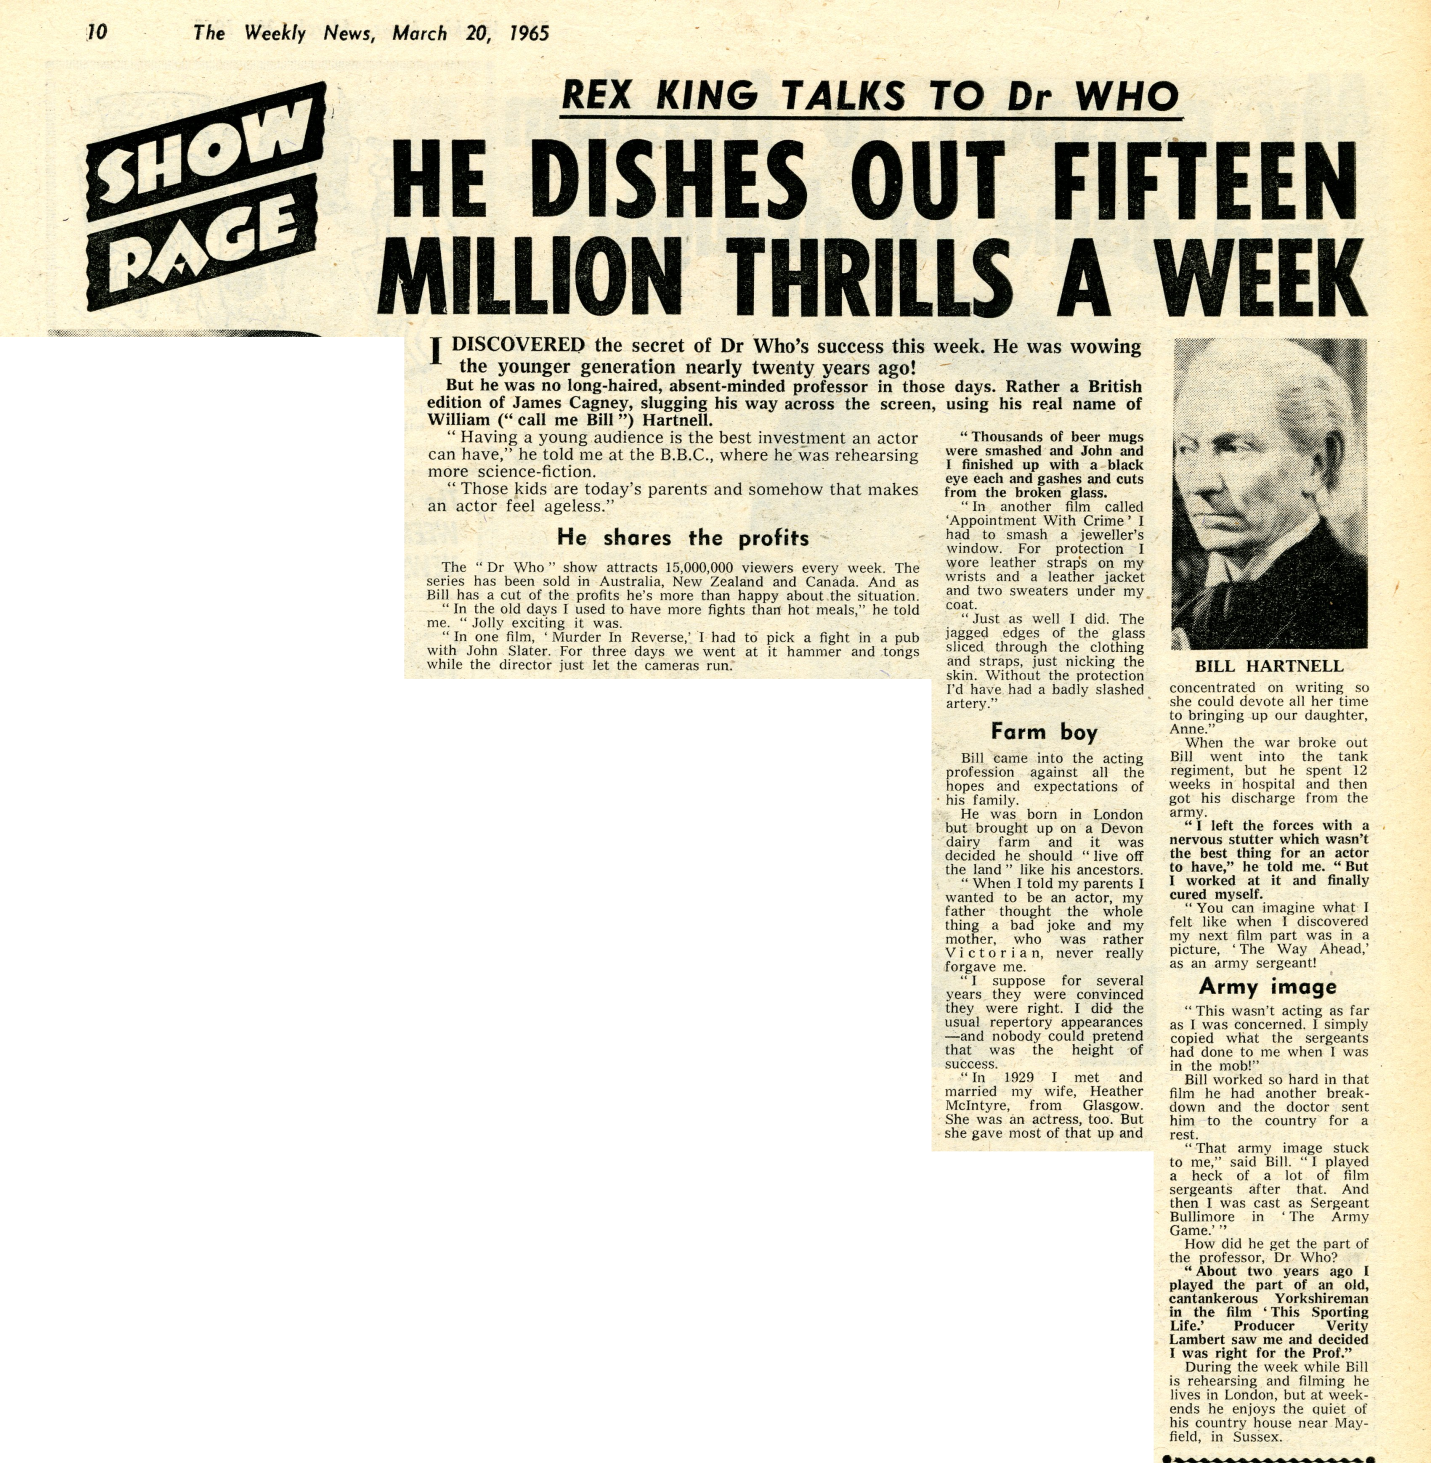 Weekly News, March 20, 1965